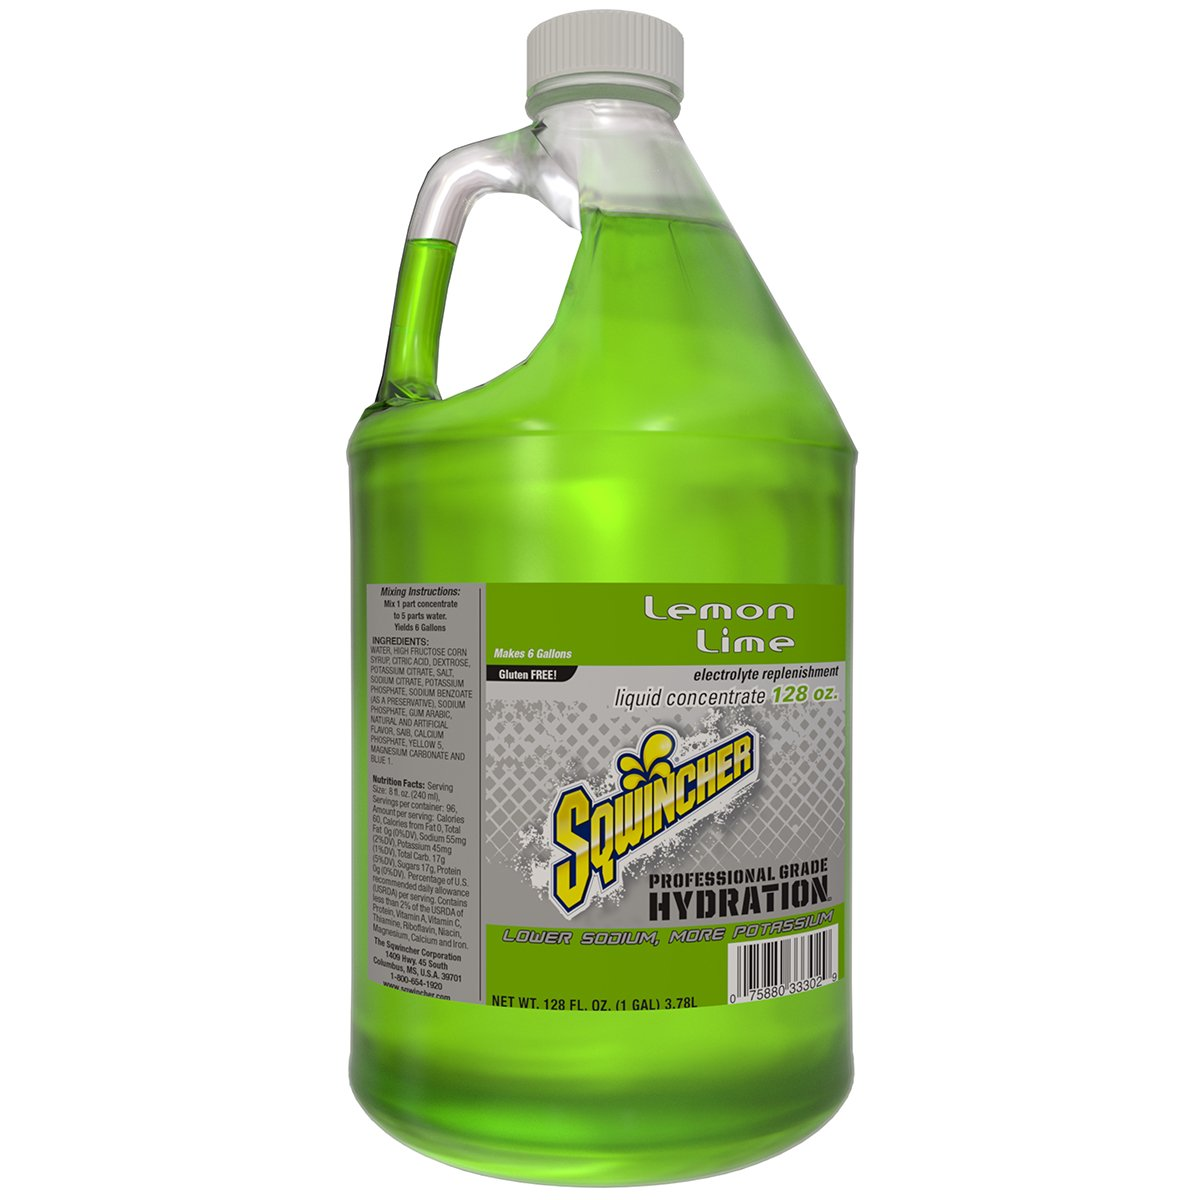 Sqwincher 128 oz Liquid Concentrate Electrolyte Replacement Beverage Mix, 6 Gallon Yield, Lemon Lime 040208-LL (Case of 4)